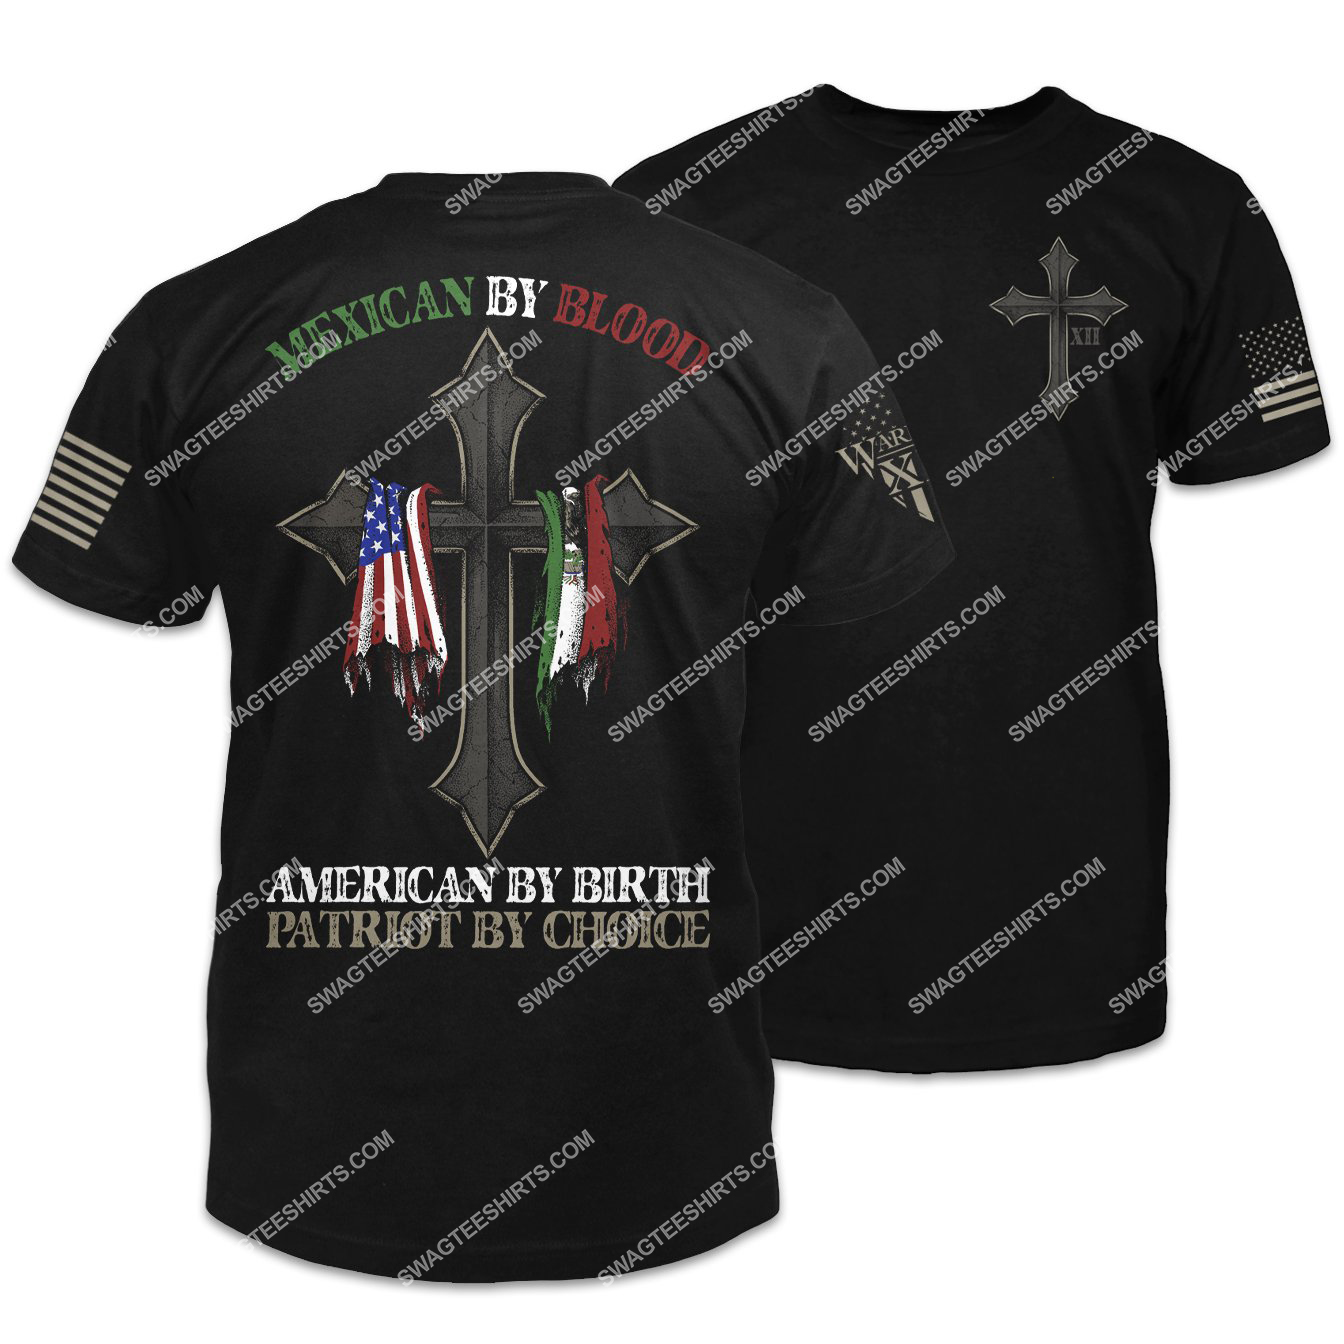 mexican by blood american by birth patriot by choice shirt 1 - Copy (2)